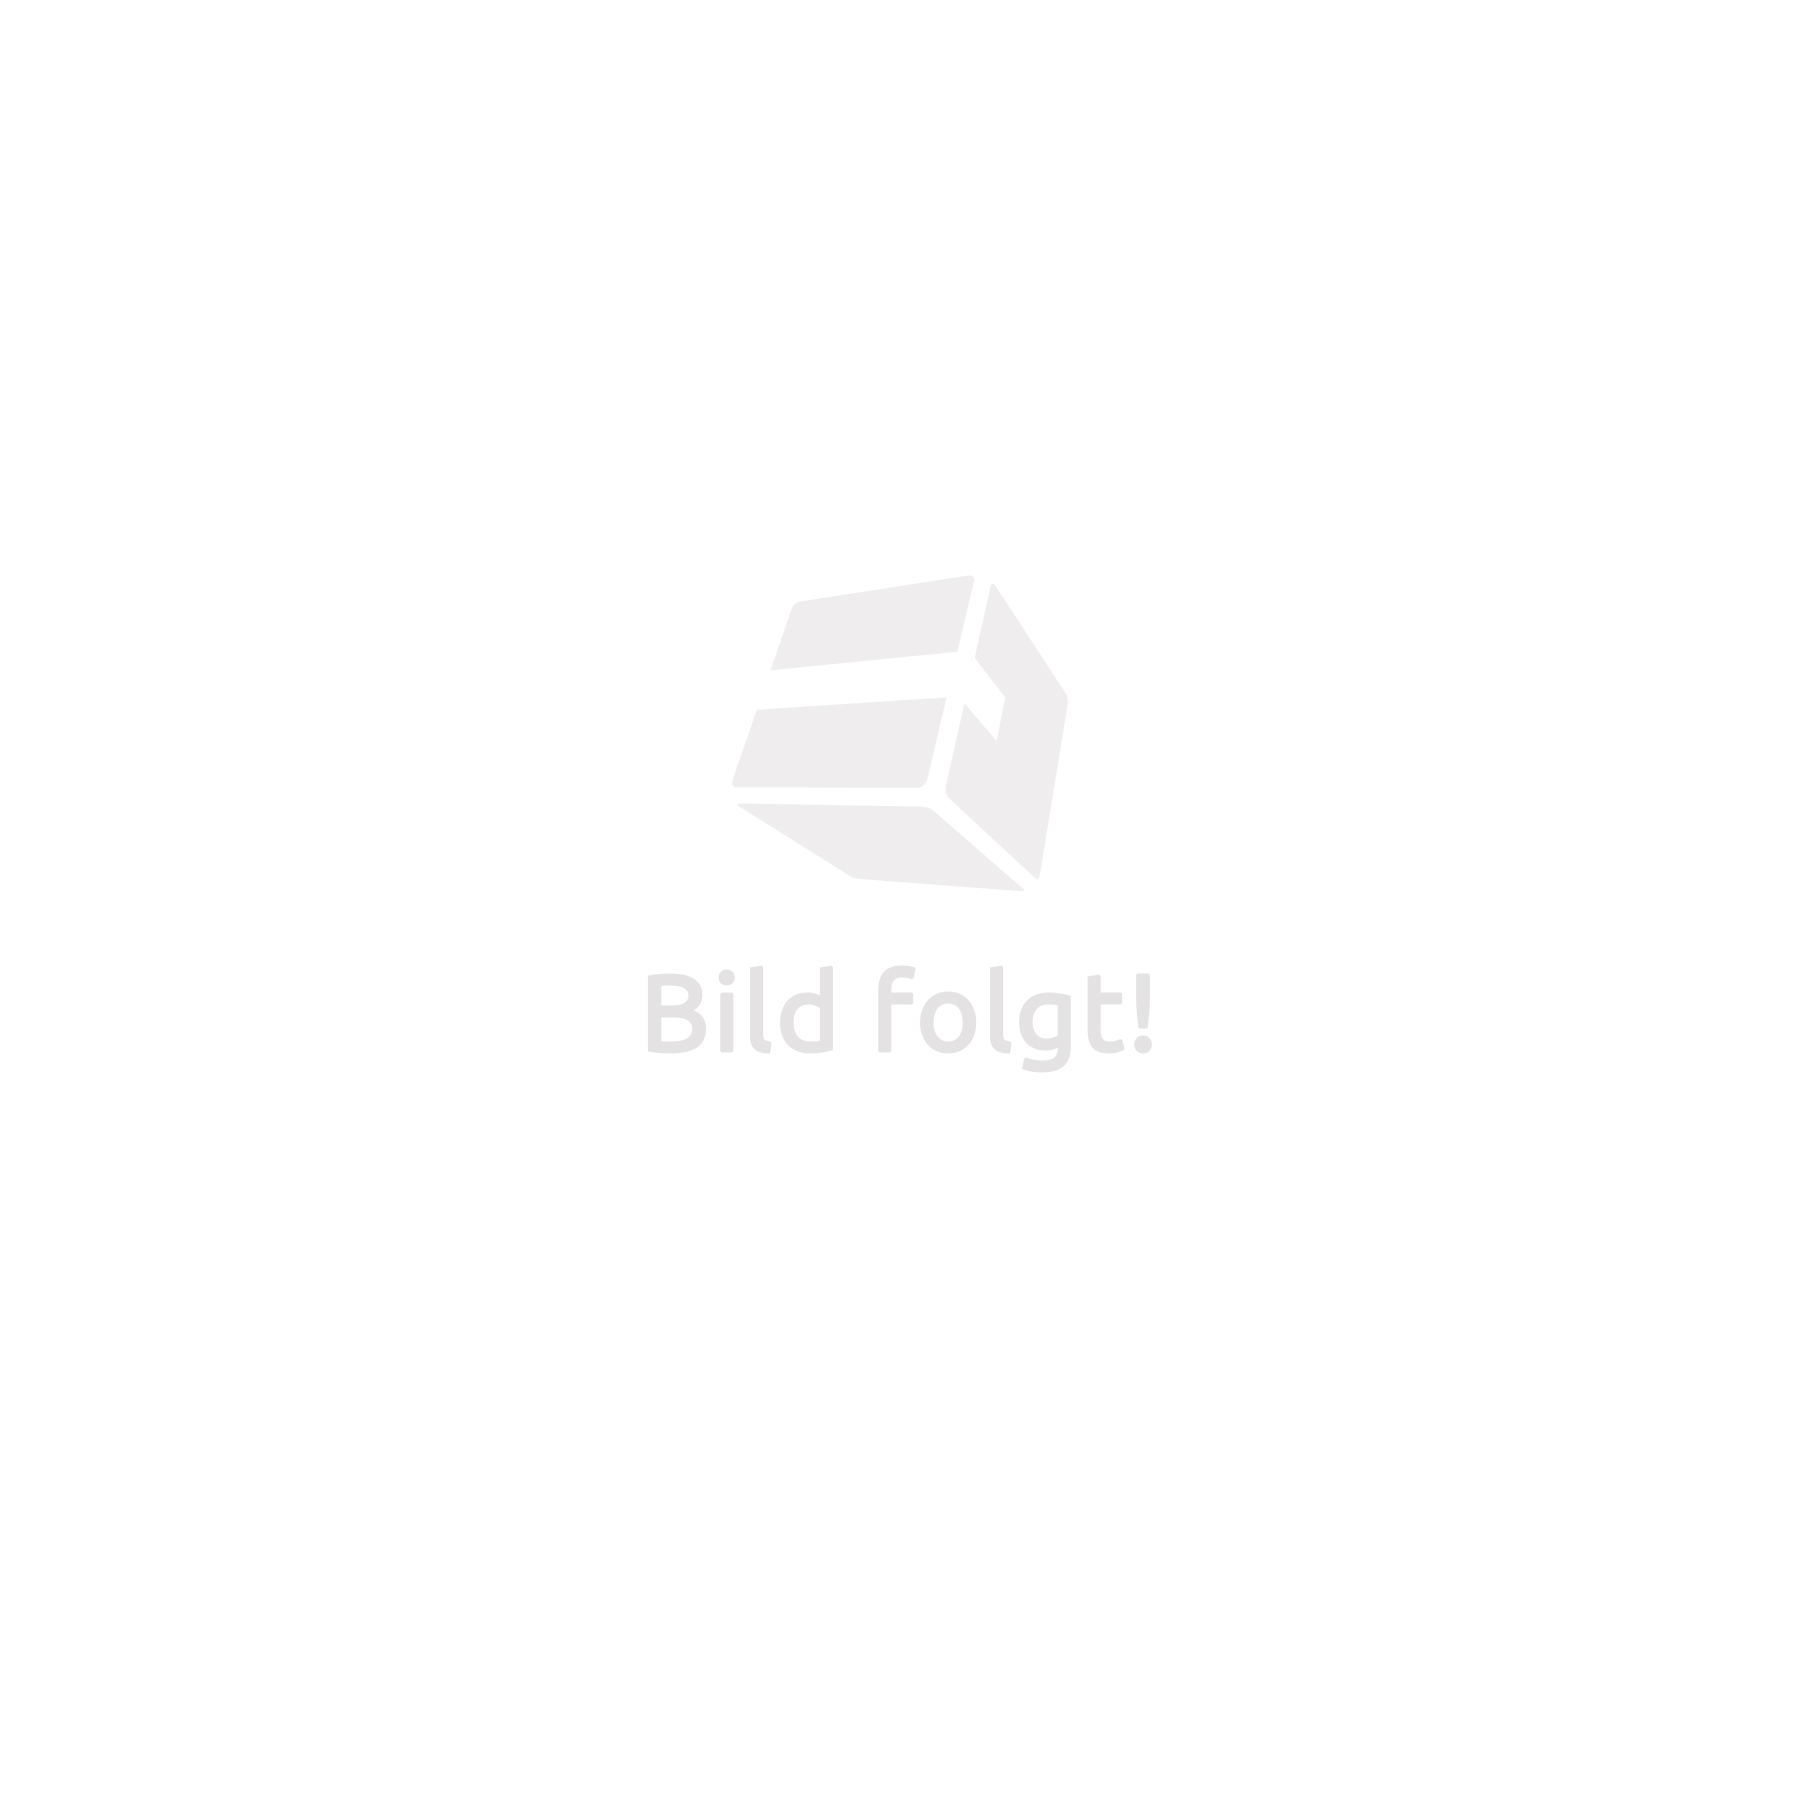 Sit Stand Desktop Computer Workstation Desk Ergonomic